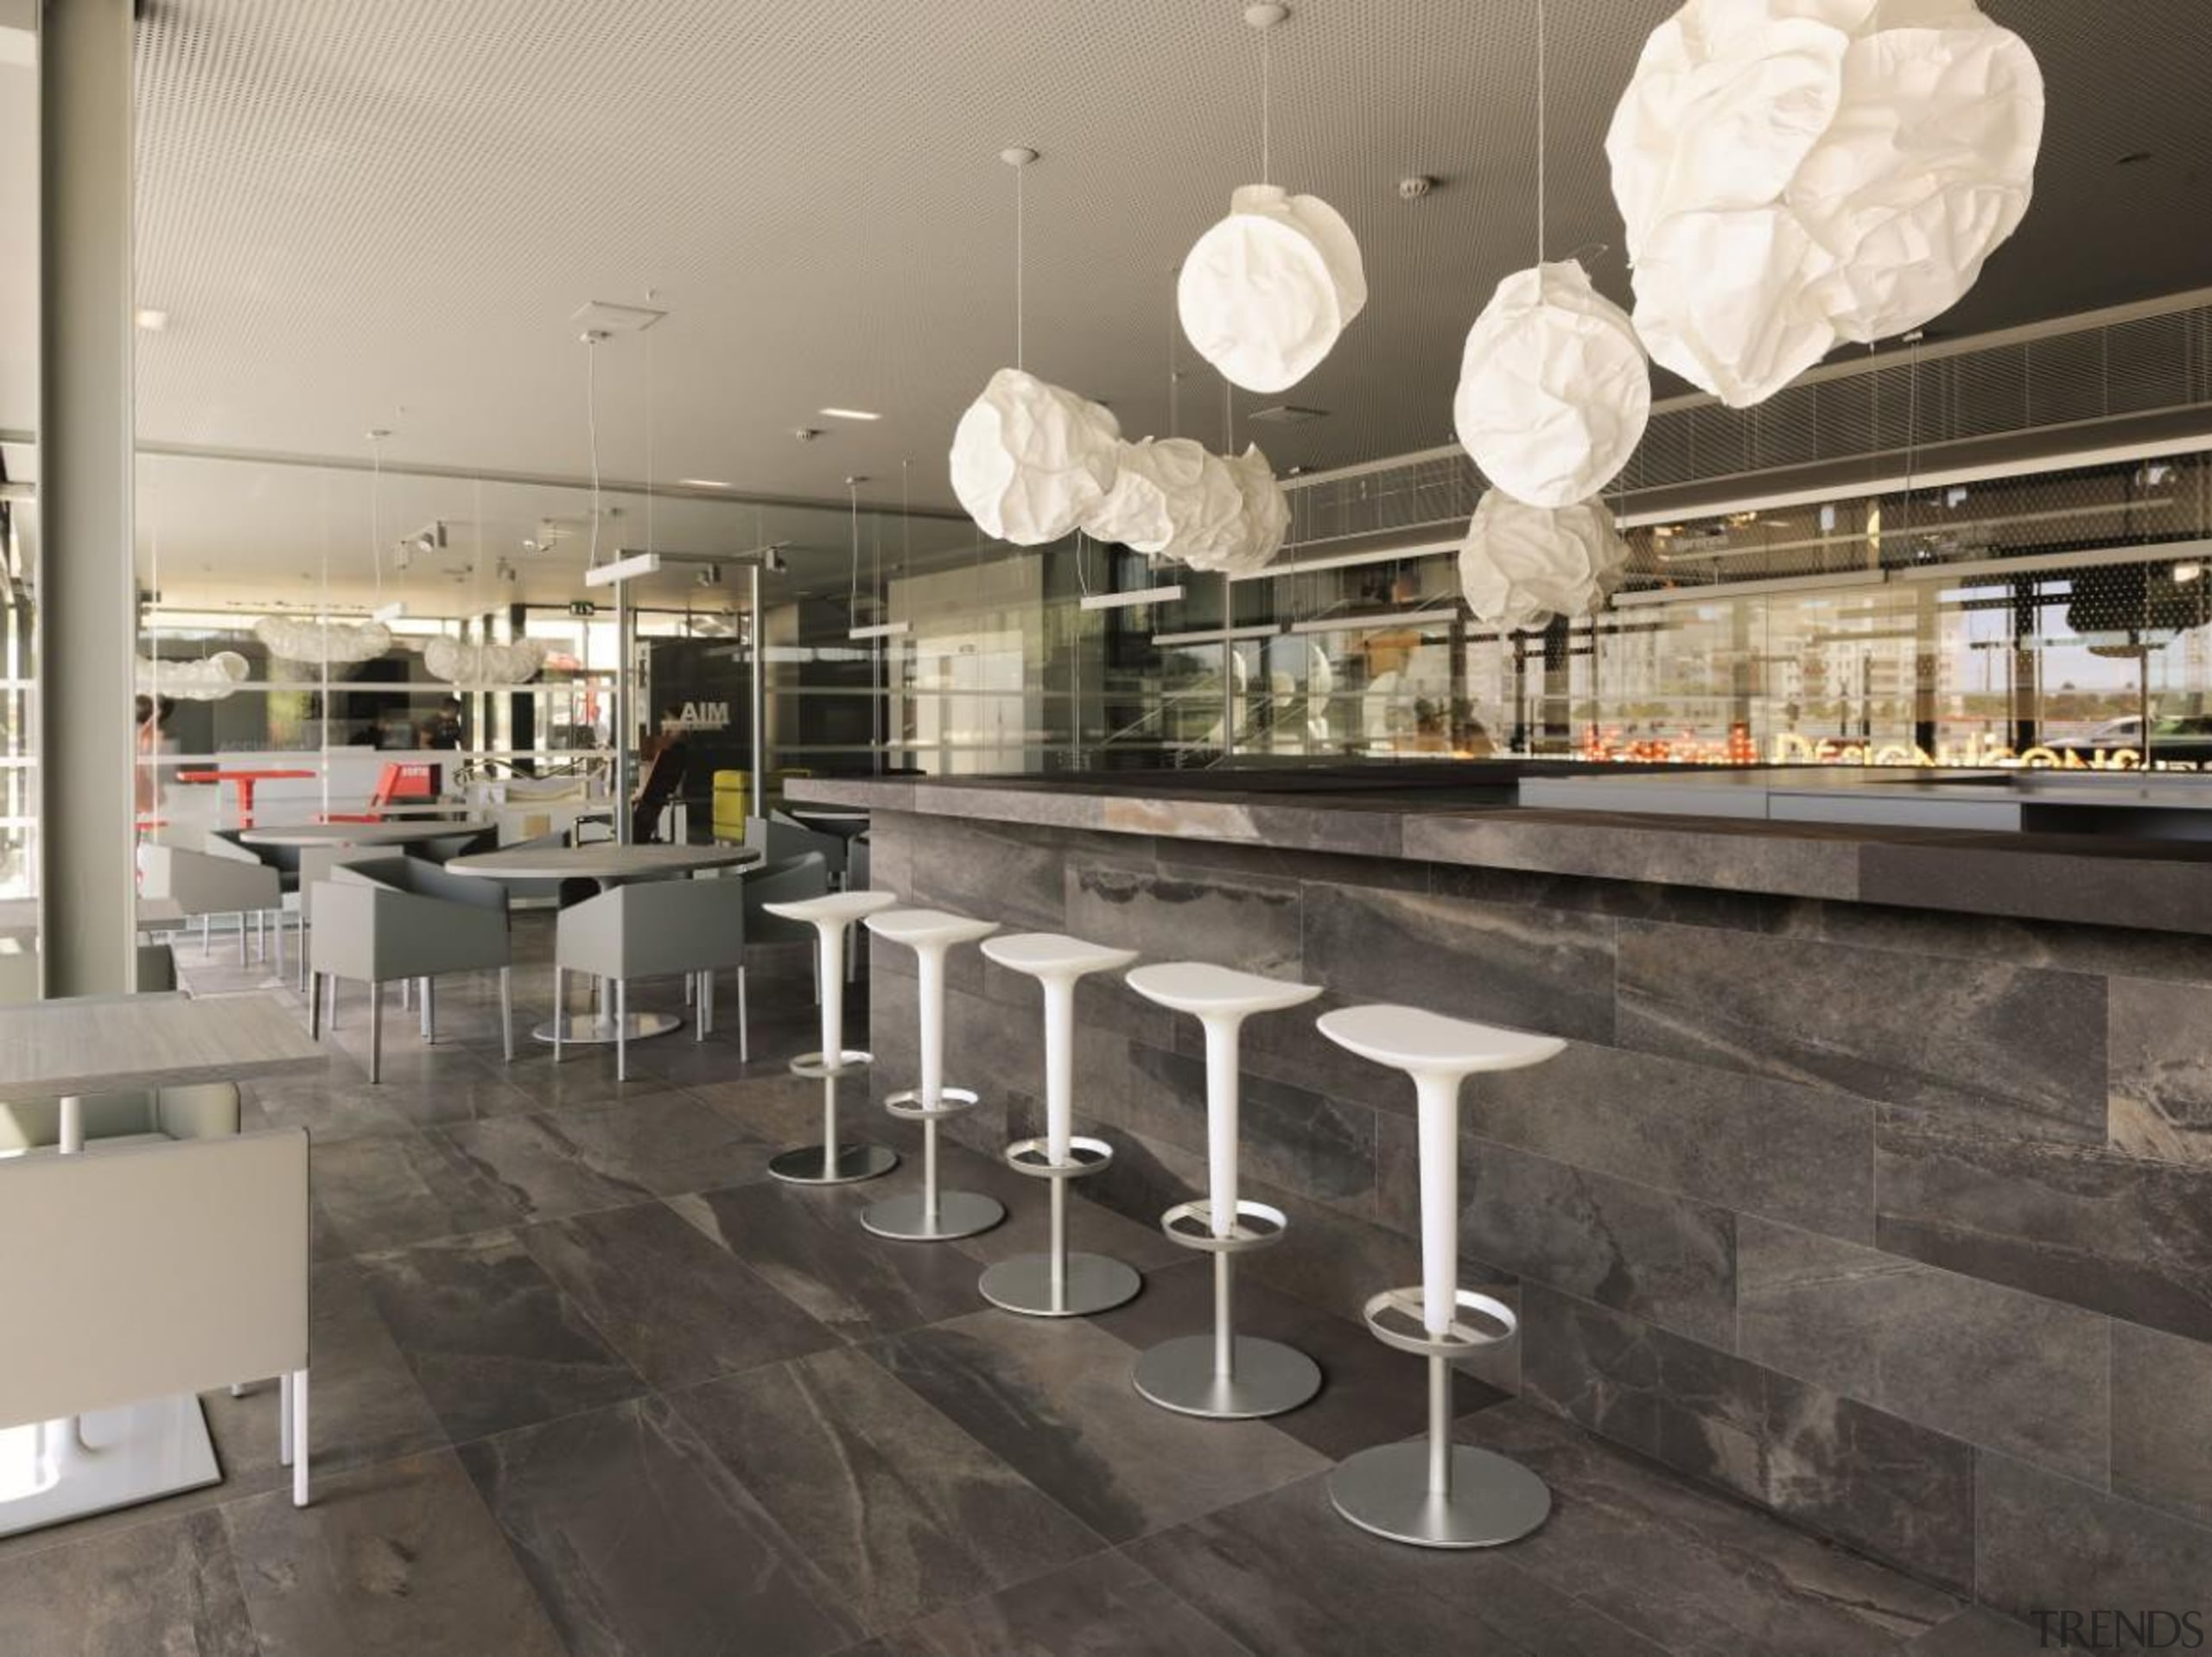 Stunning natural stone large format tiles reproduced in interior design, gray, black